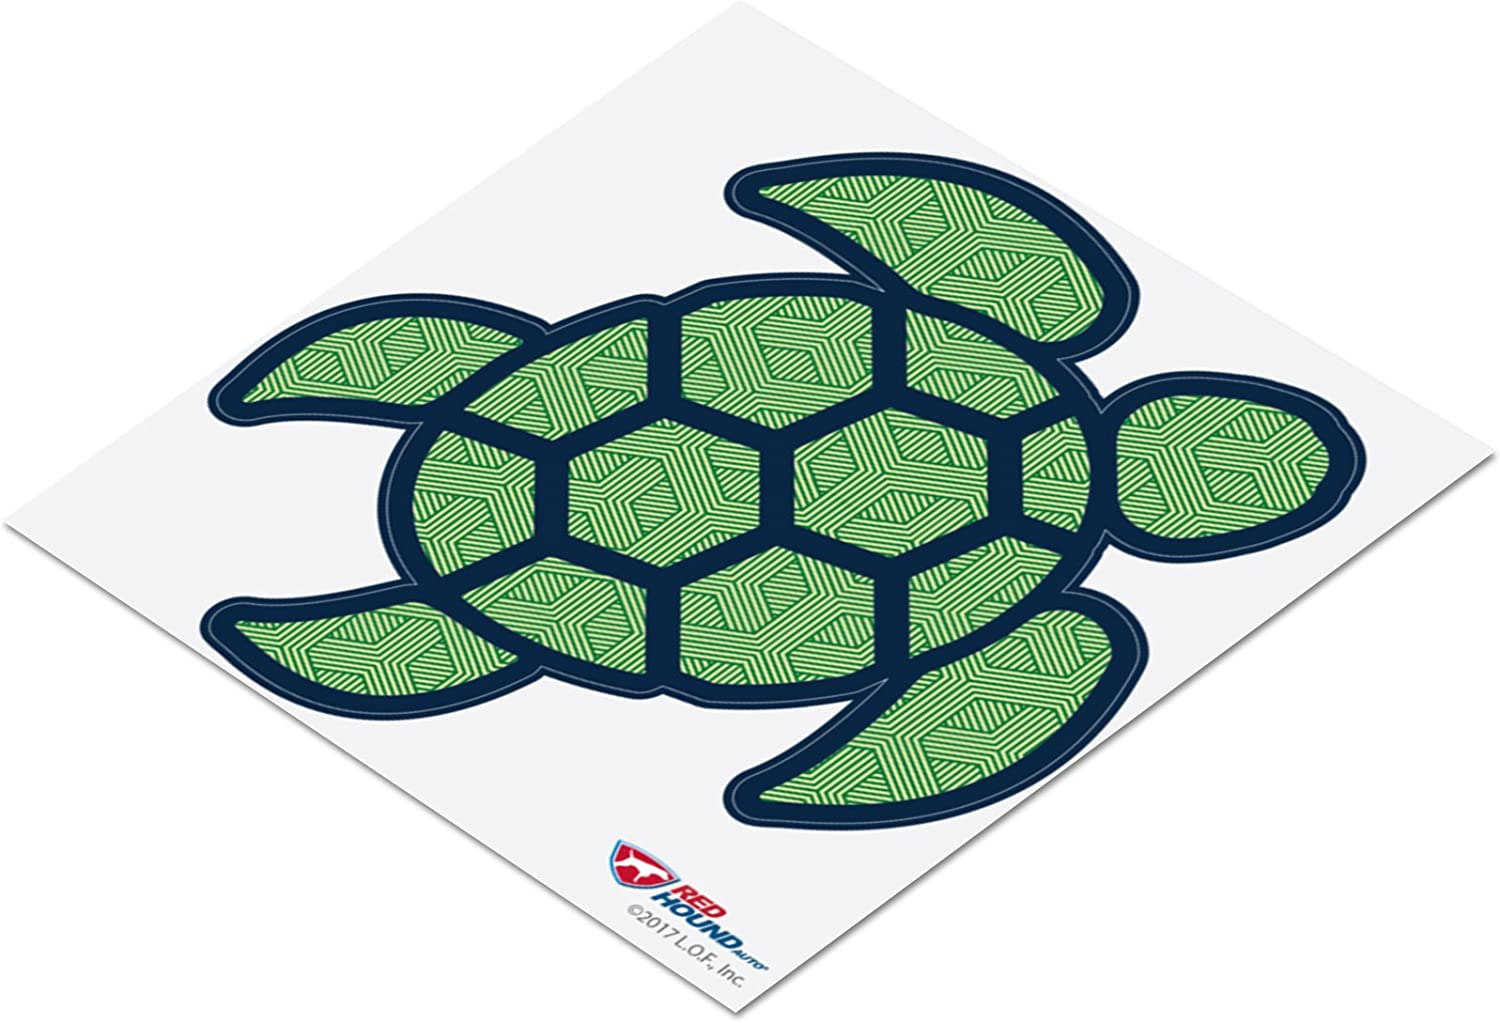 Red Hound Auto Sea Turtle Leaf Green Sticker Decal Wall Tumbler Cup Window Car Truck Laptop 2.5 Inches